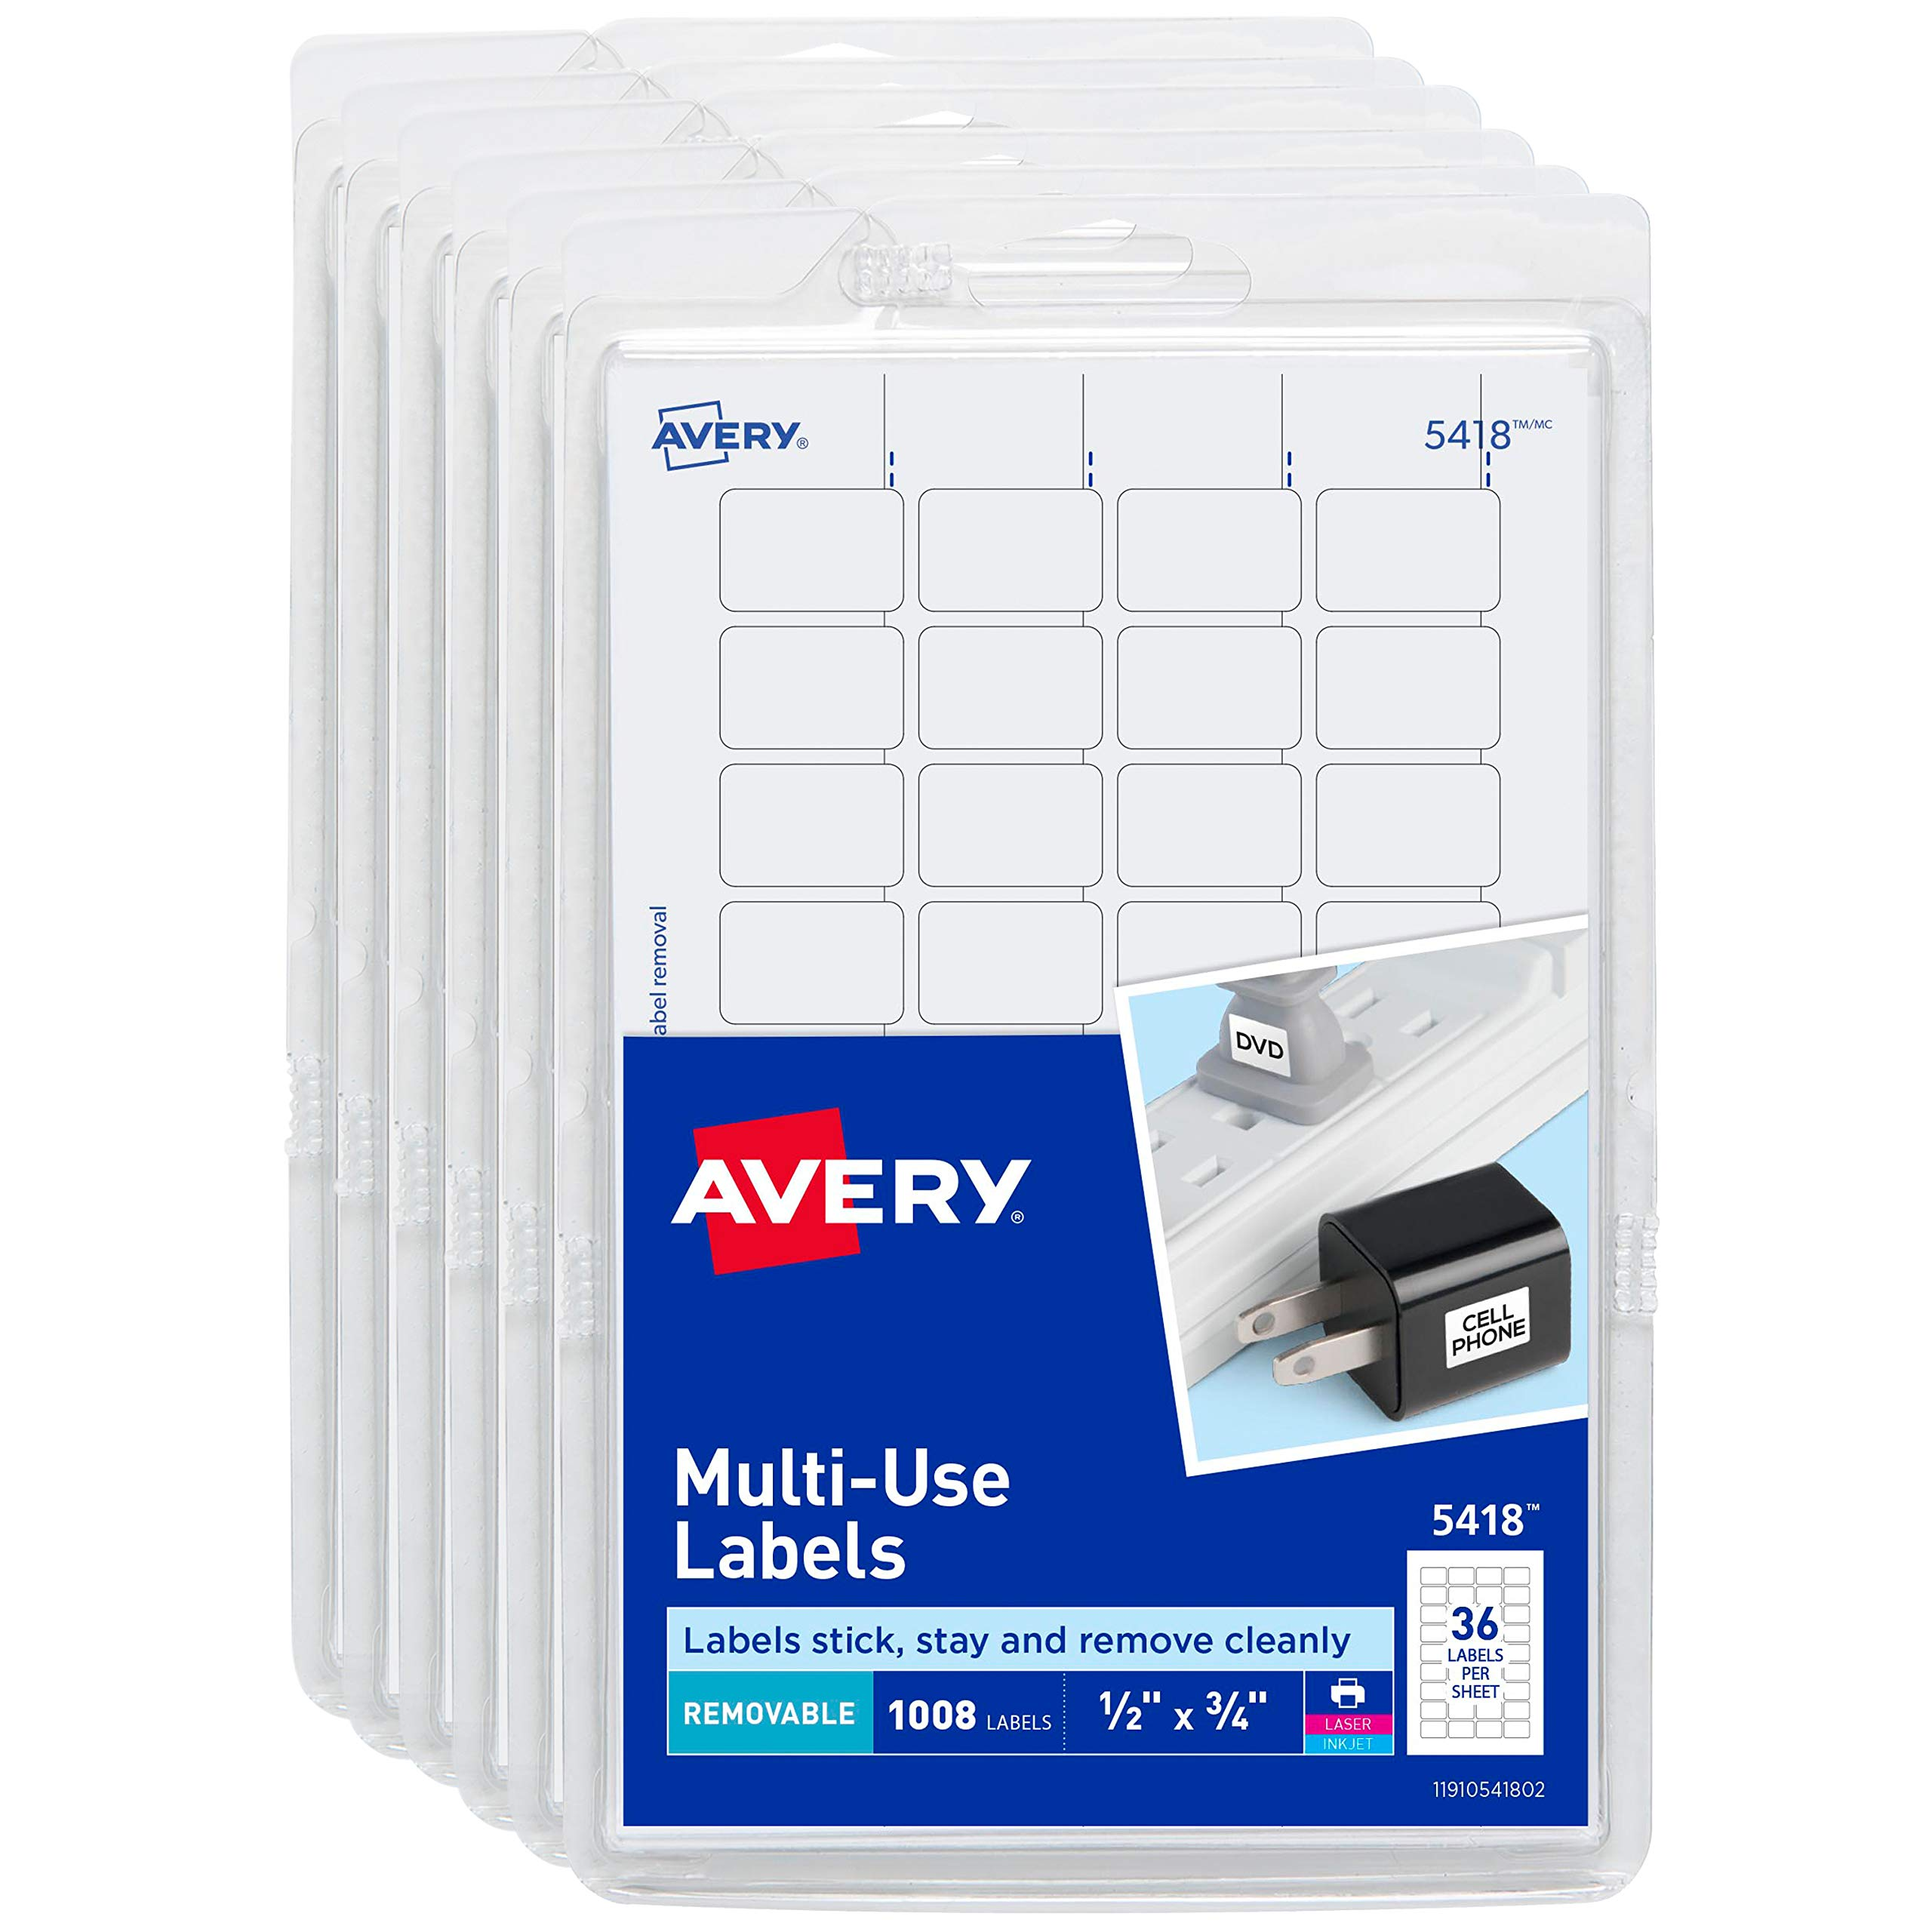 Avery Self-Adhesive Removable Labels, 1/2'' x 3/4'', White, 6000 Labels (6-Pack 5418) by AVERY